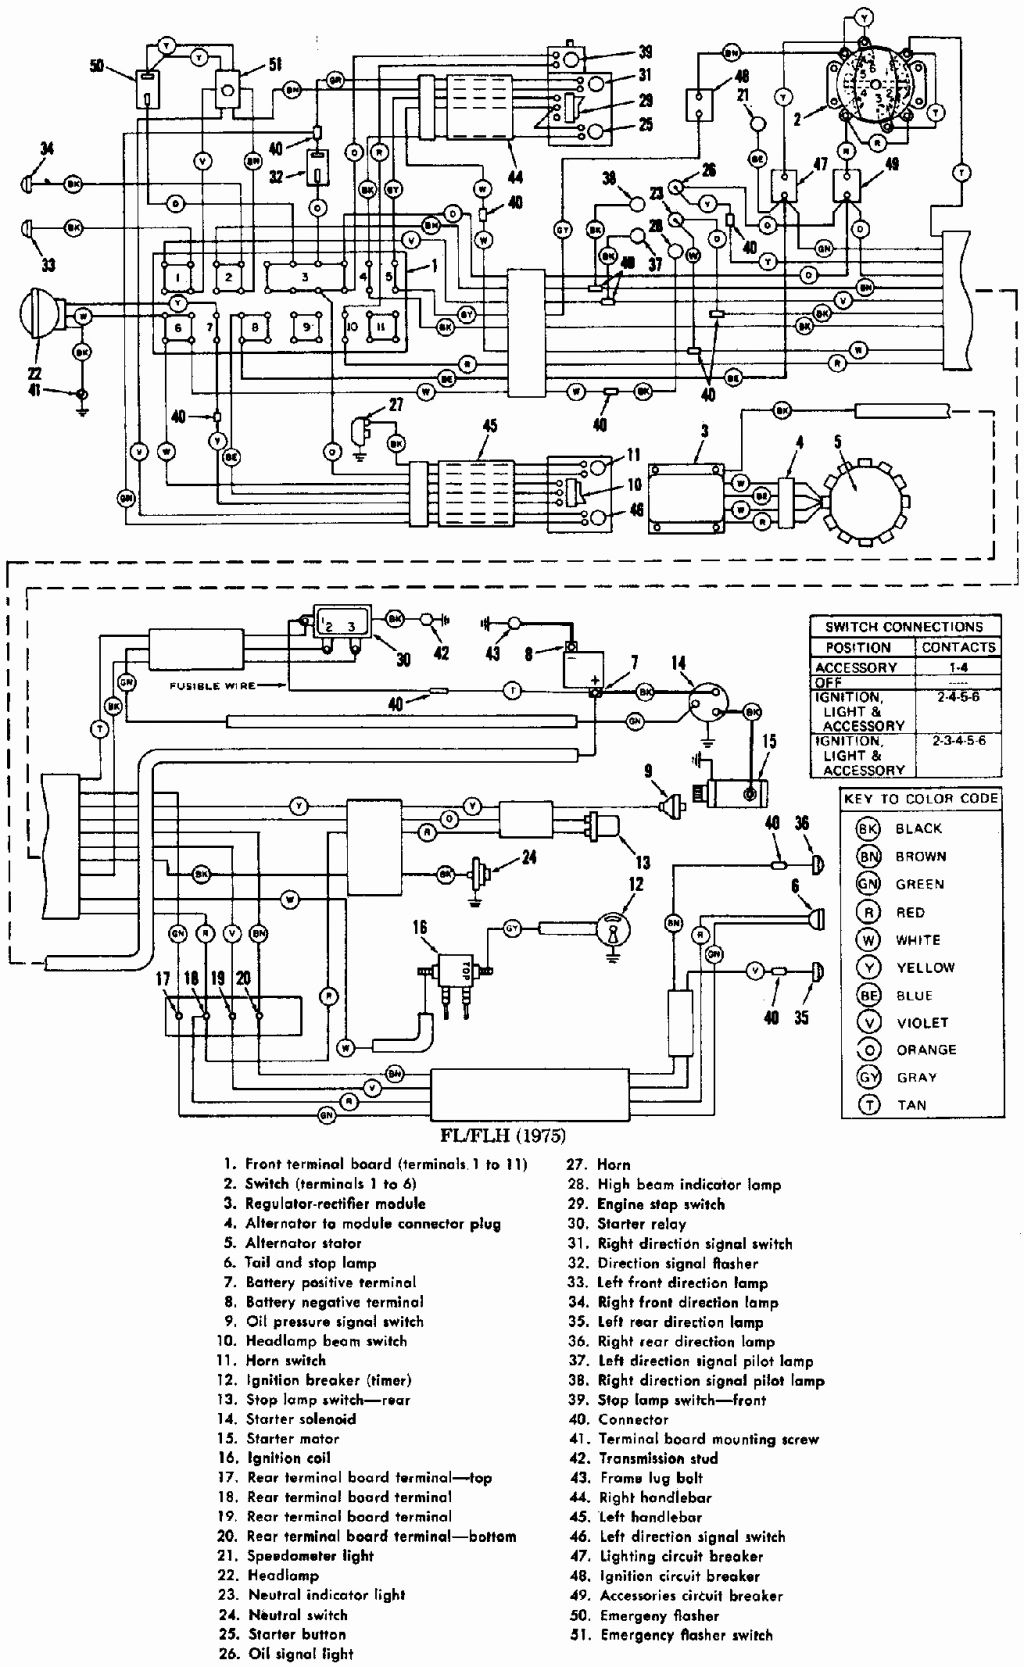 harley davidson radio wiring diagram | free wiring diagram 2004 2007 harley davidson wiring schematics and diagrams #5